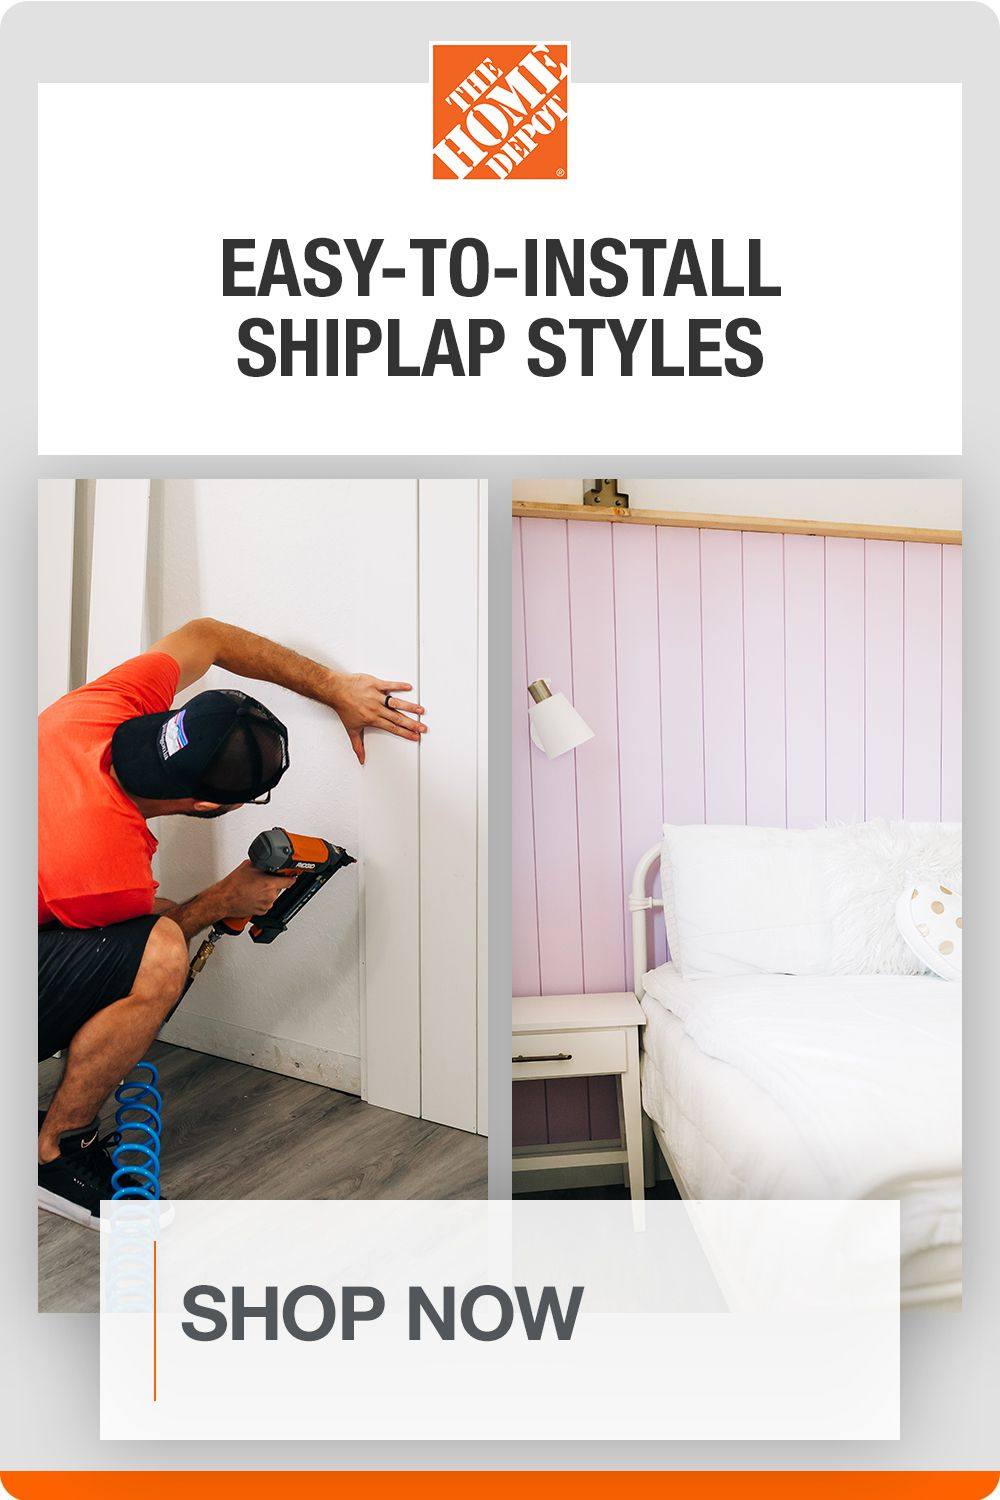 Personalize your look and add texture to any room with a variety of shiplap styles. Rent the tools you need, and use our easy-to-follow how-to guides to create a customized space. Tap to shop shiplap looks at The Home Depot.